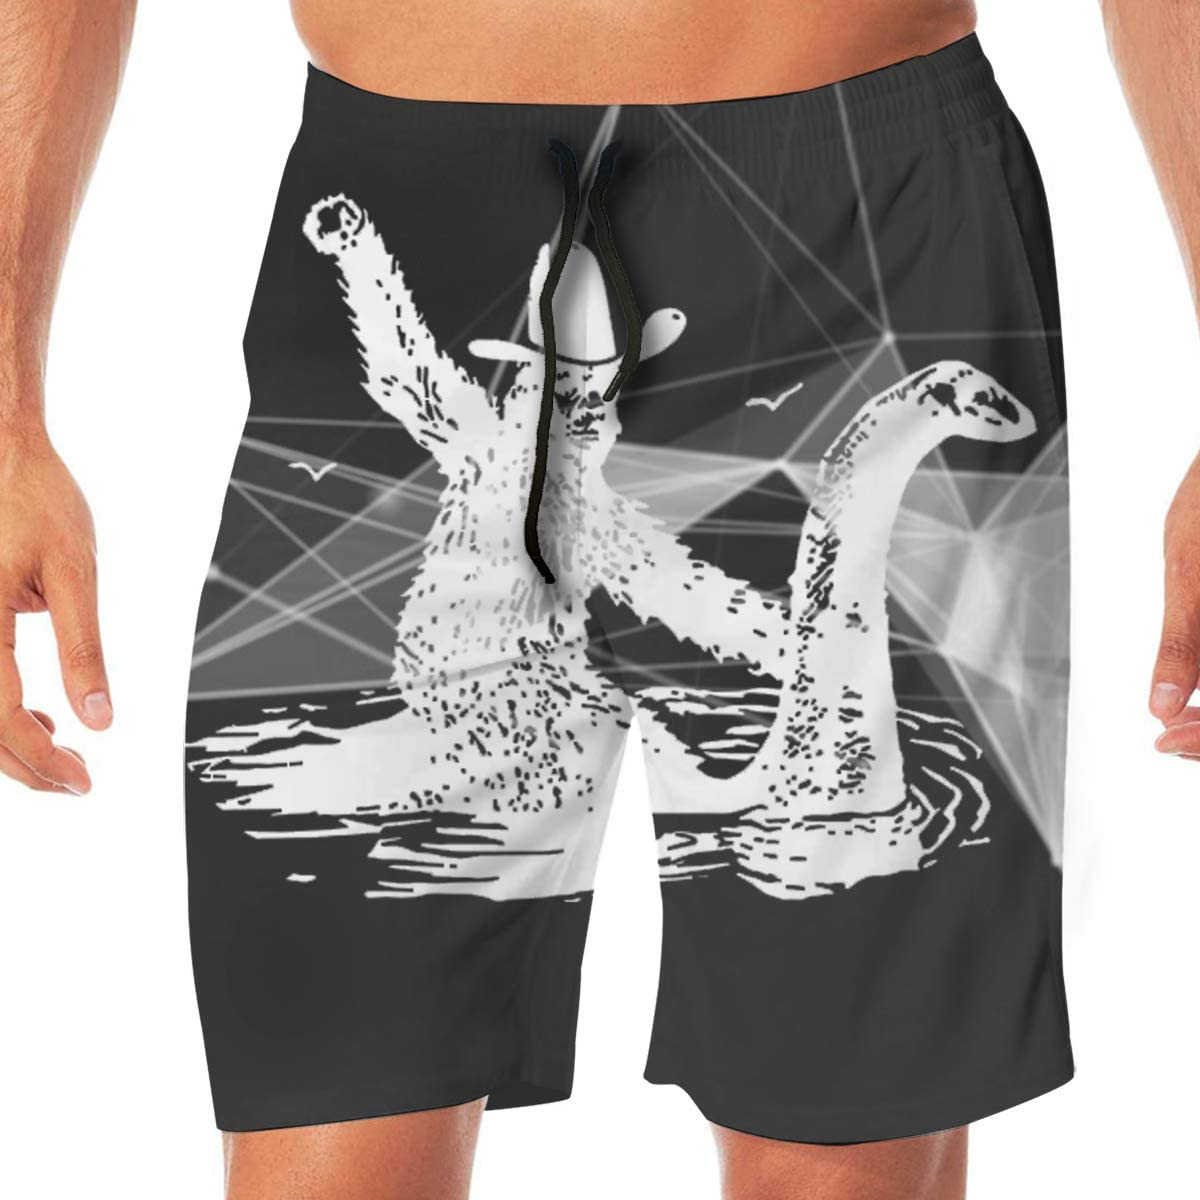 Bigfoot Riding On Nessie Mens Classic Summer Shorts Casual Swim Shorts with Pockets